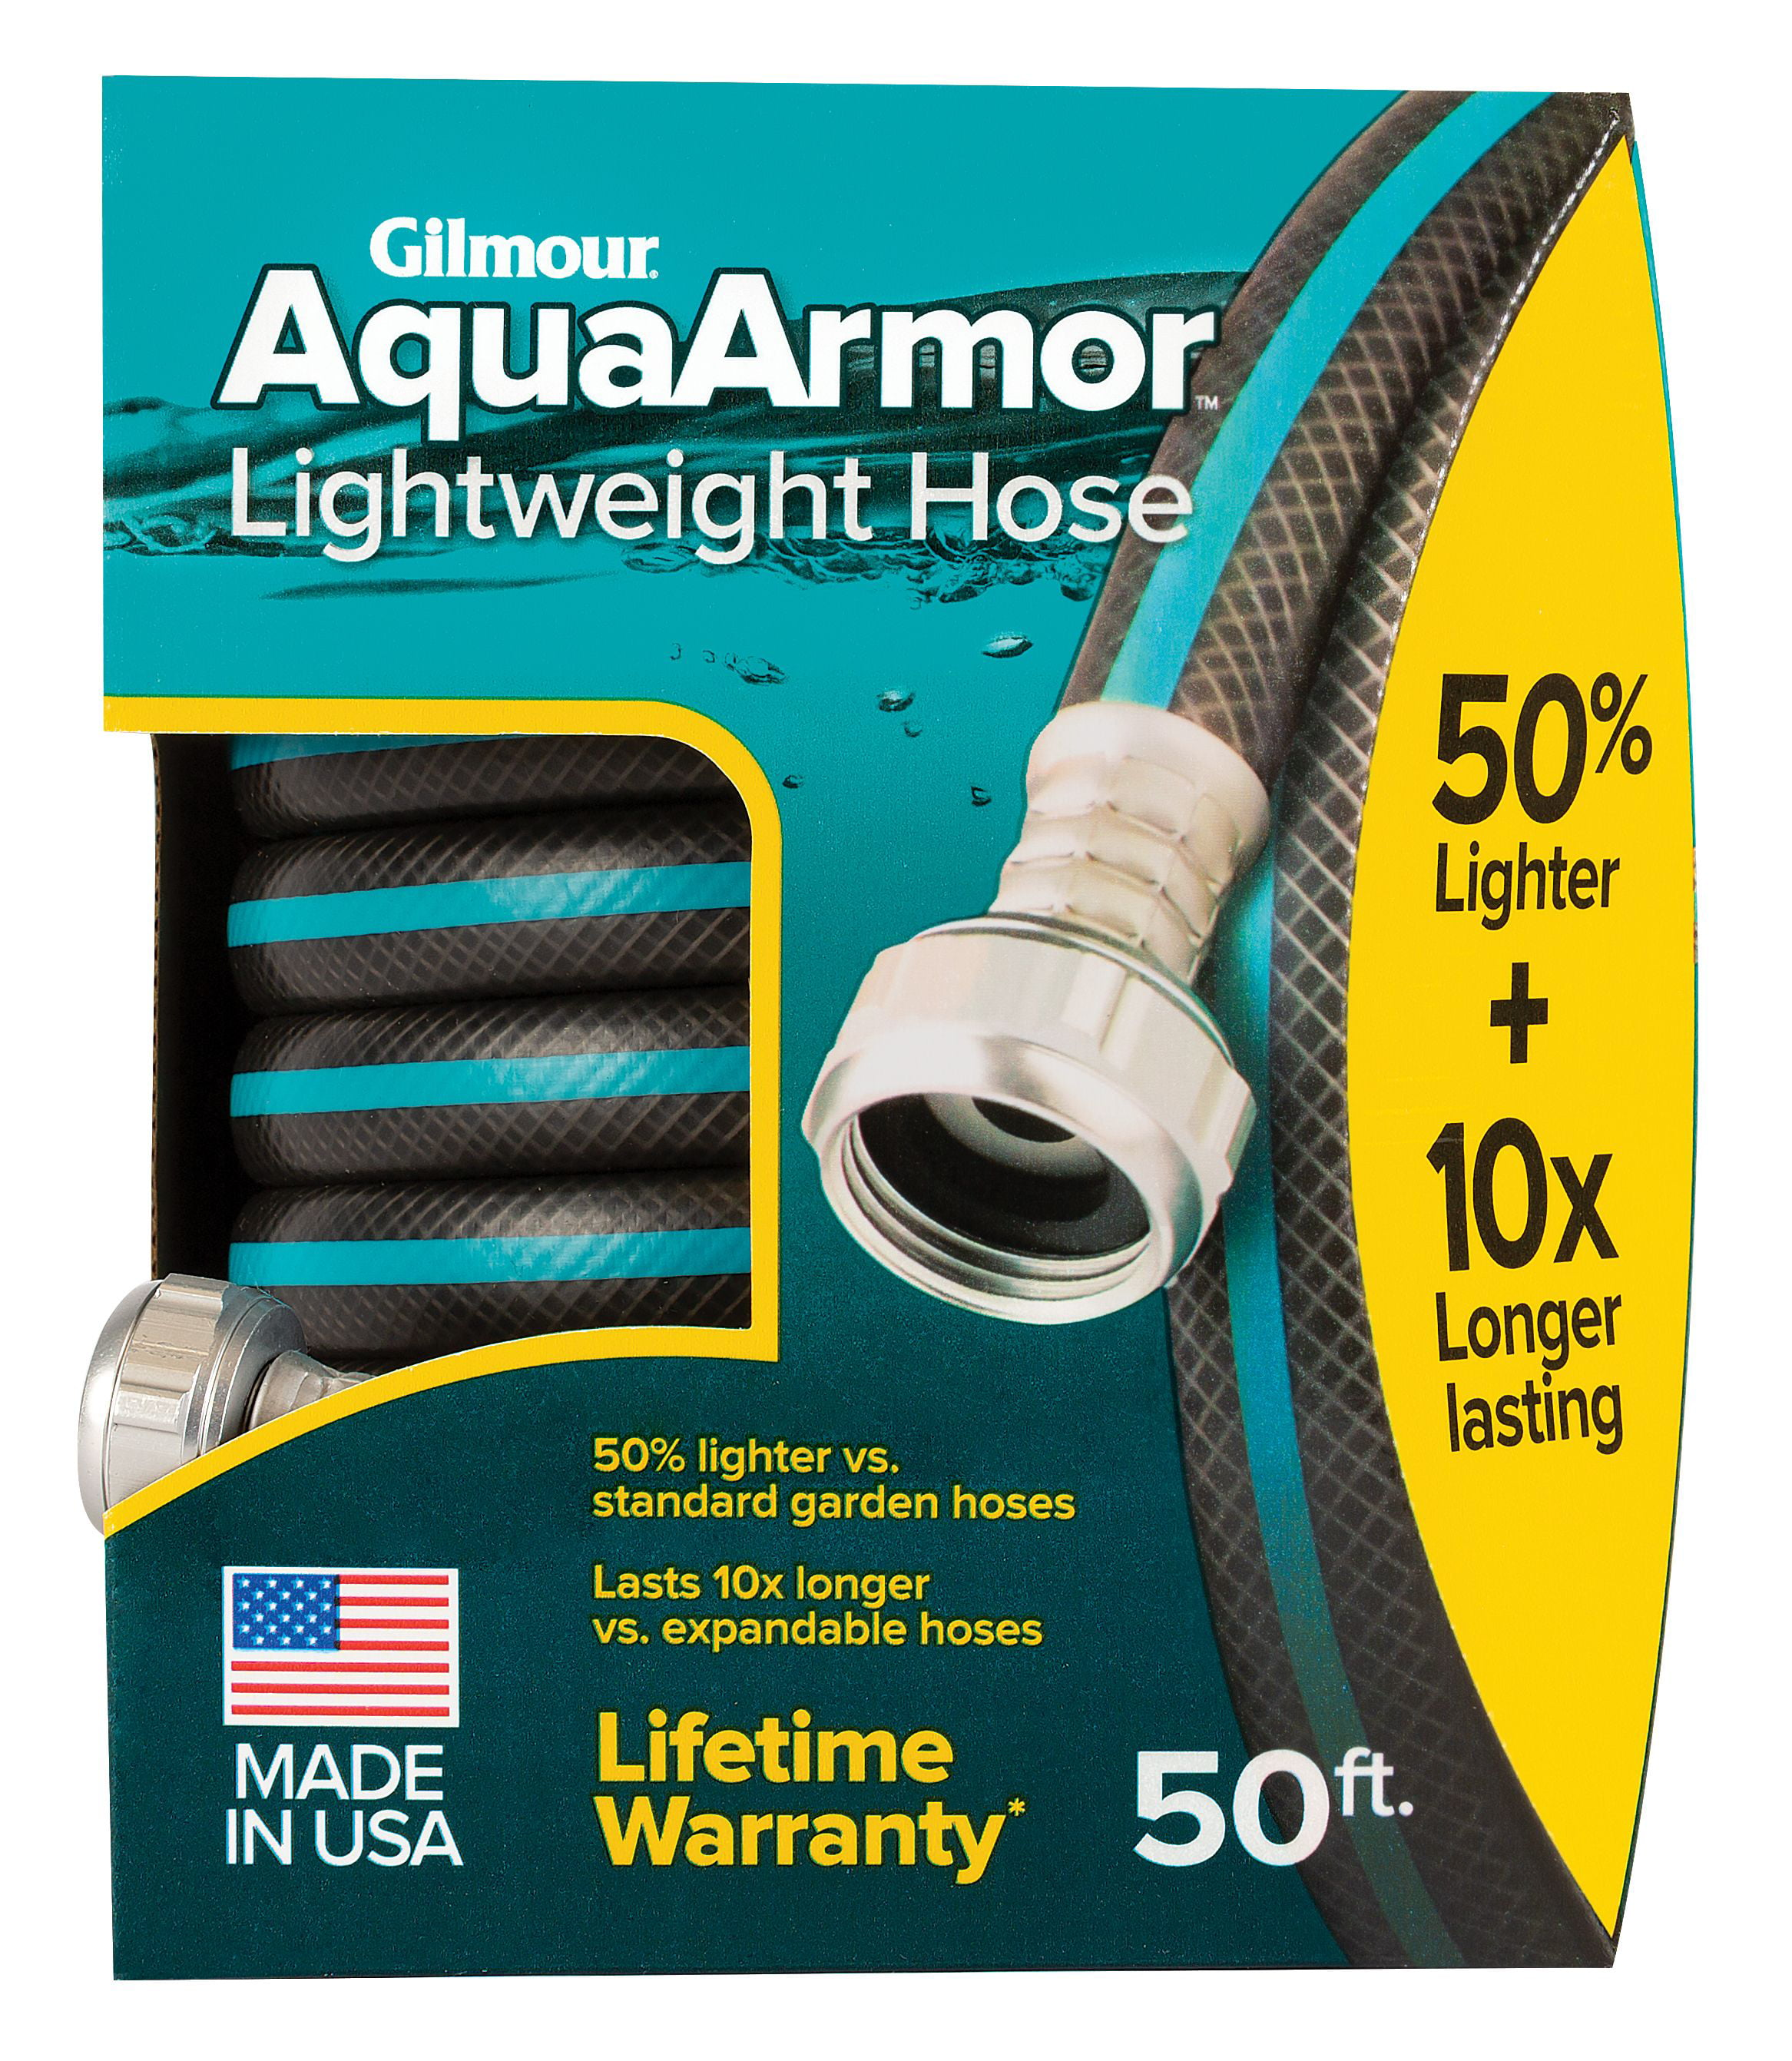 Redhorse Fuel Hose Fitting 1245-06-2; Reusable Swivel Black 06AN 06AN 45° to